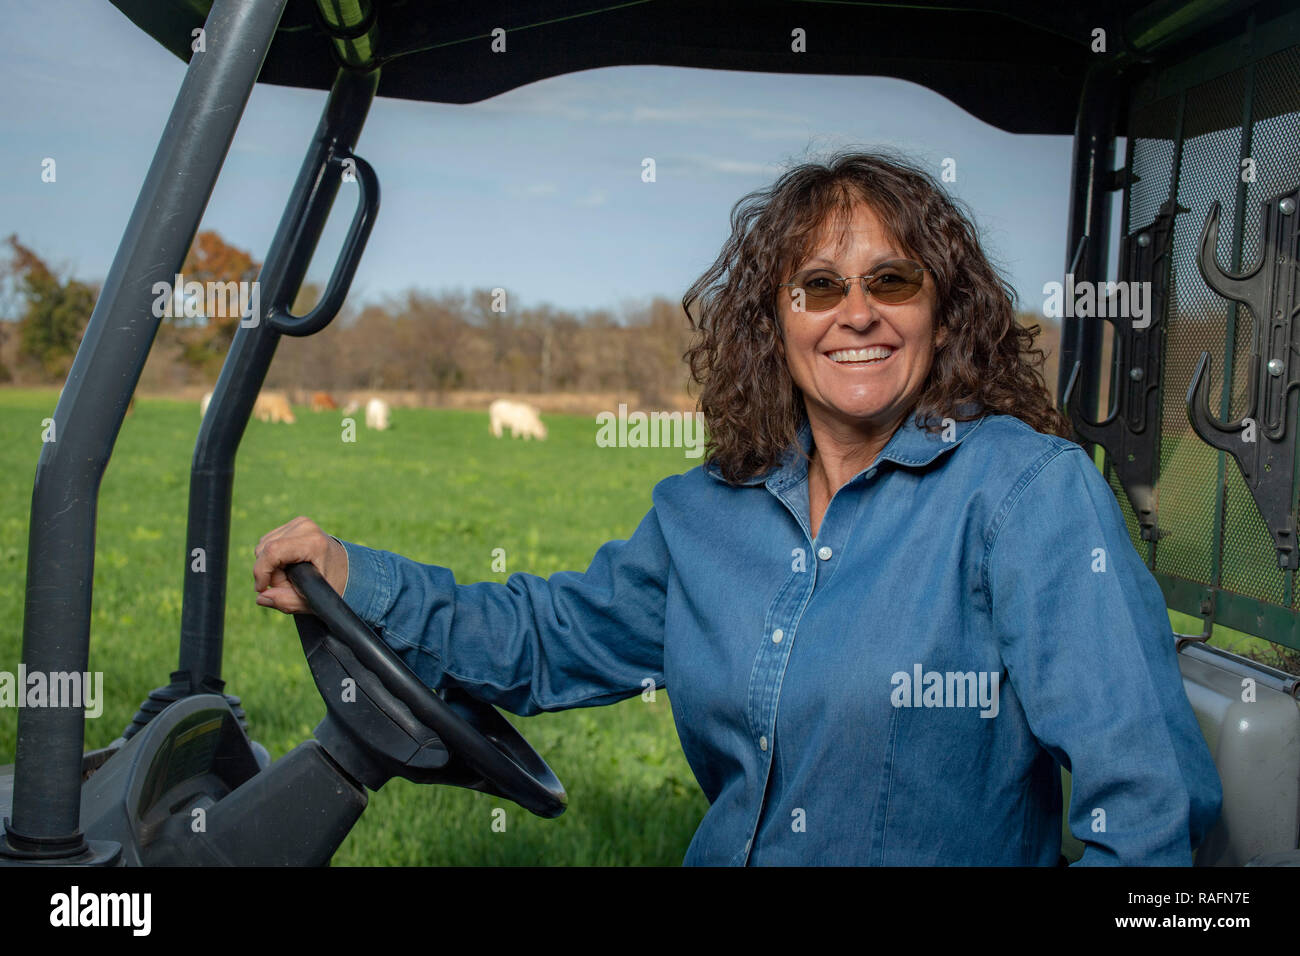 Tammy Higgins, a multi-generational Native American rancher who raises 80 head of cattle on her farm in of Okfuskee County, Oklahoma. - Stock Image